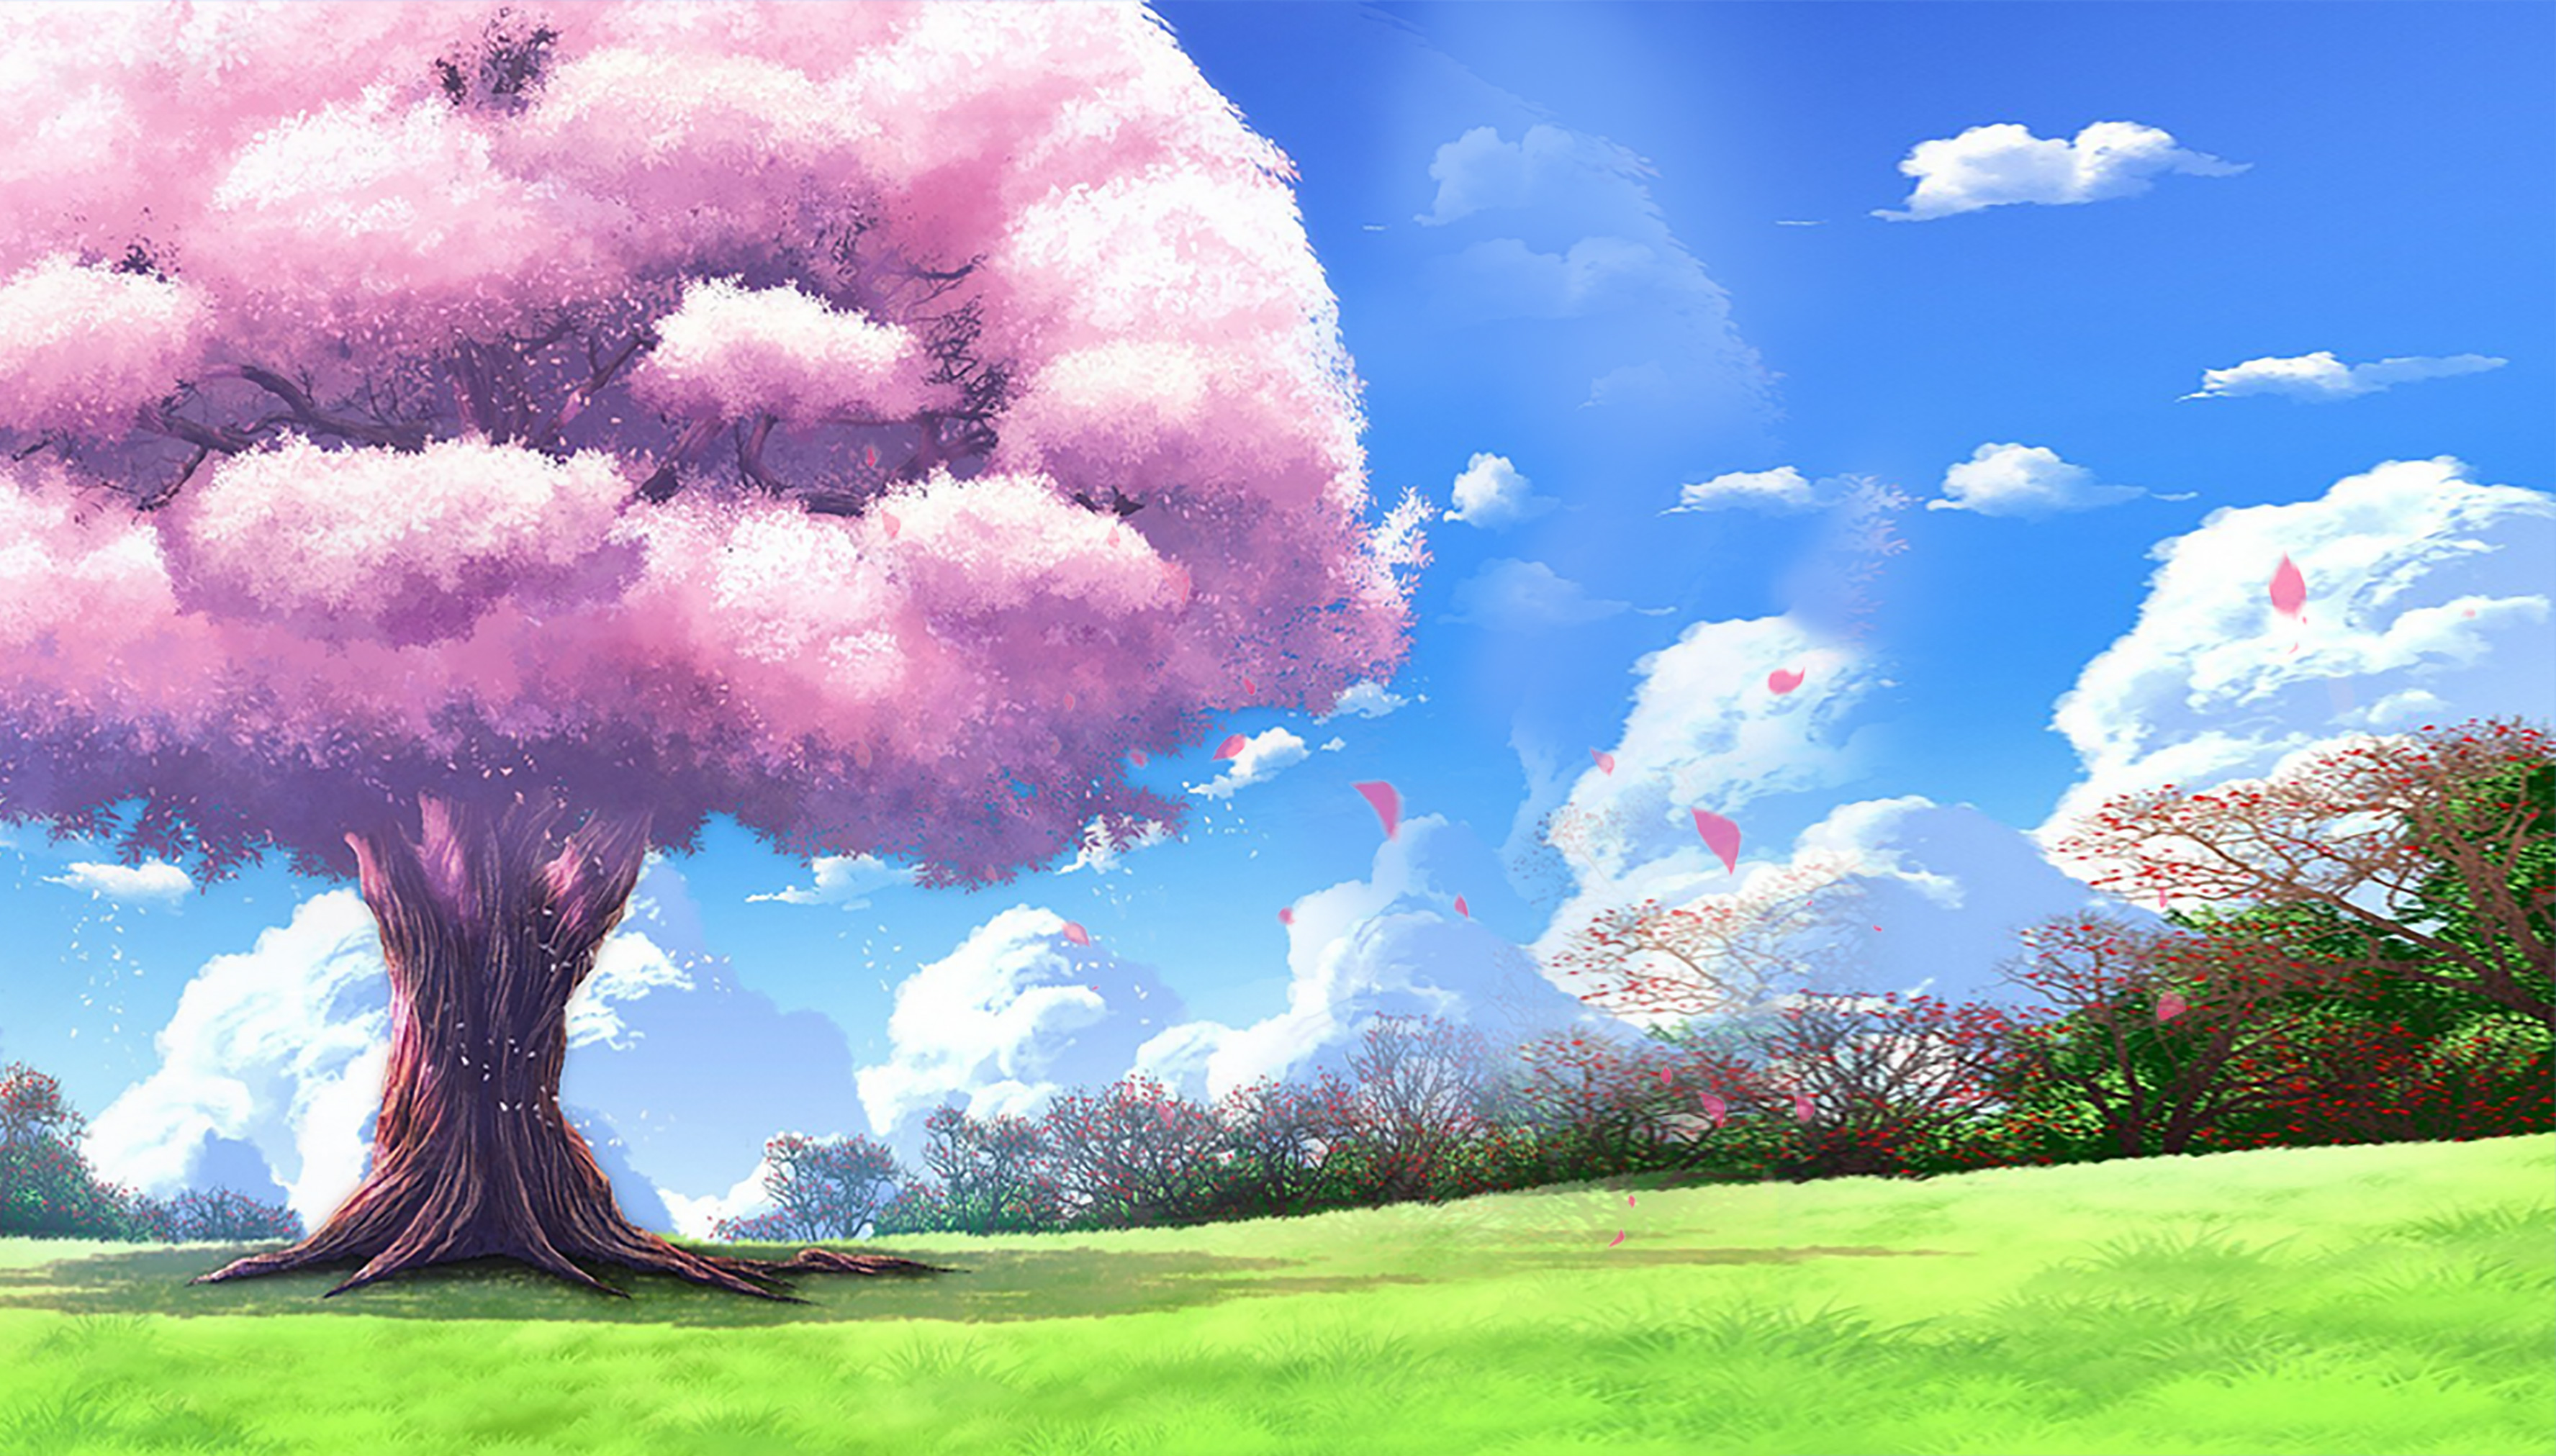 Beautiful Dream Sakura Tree Poster Background Psd